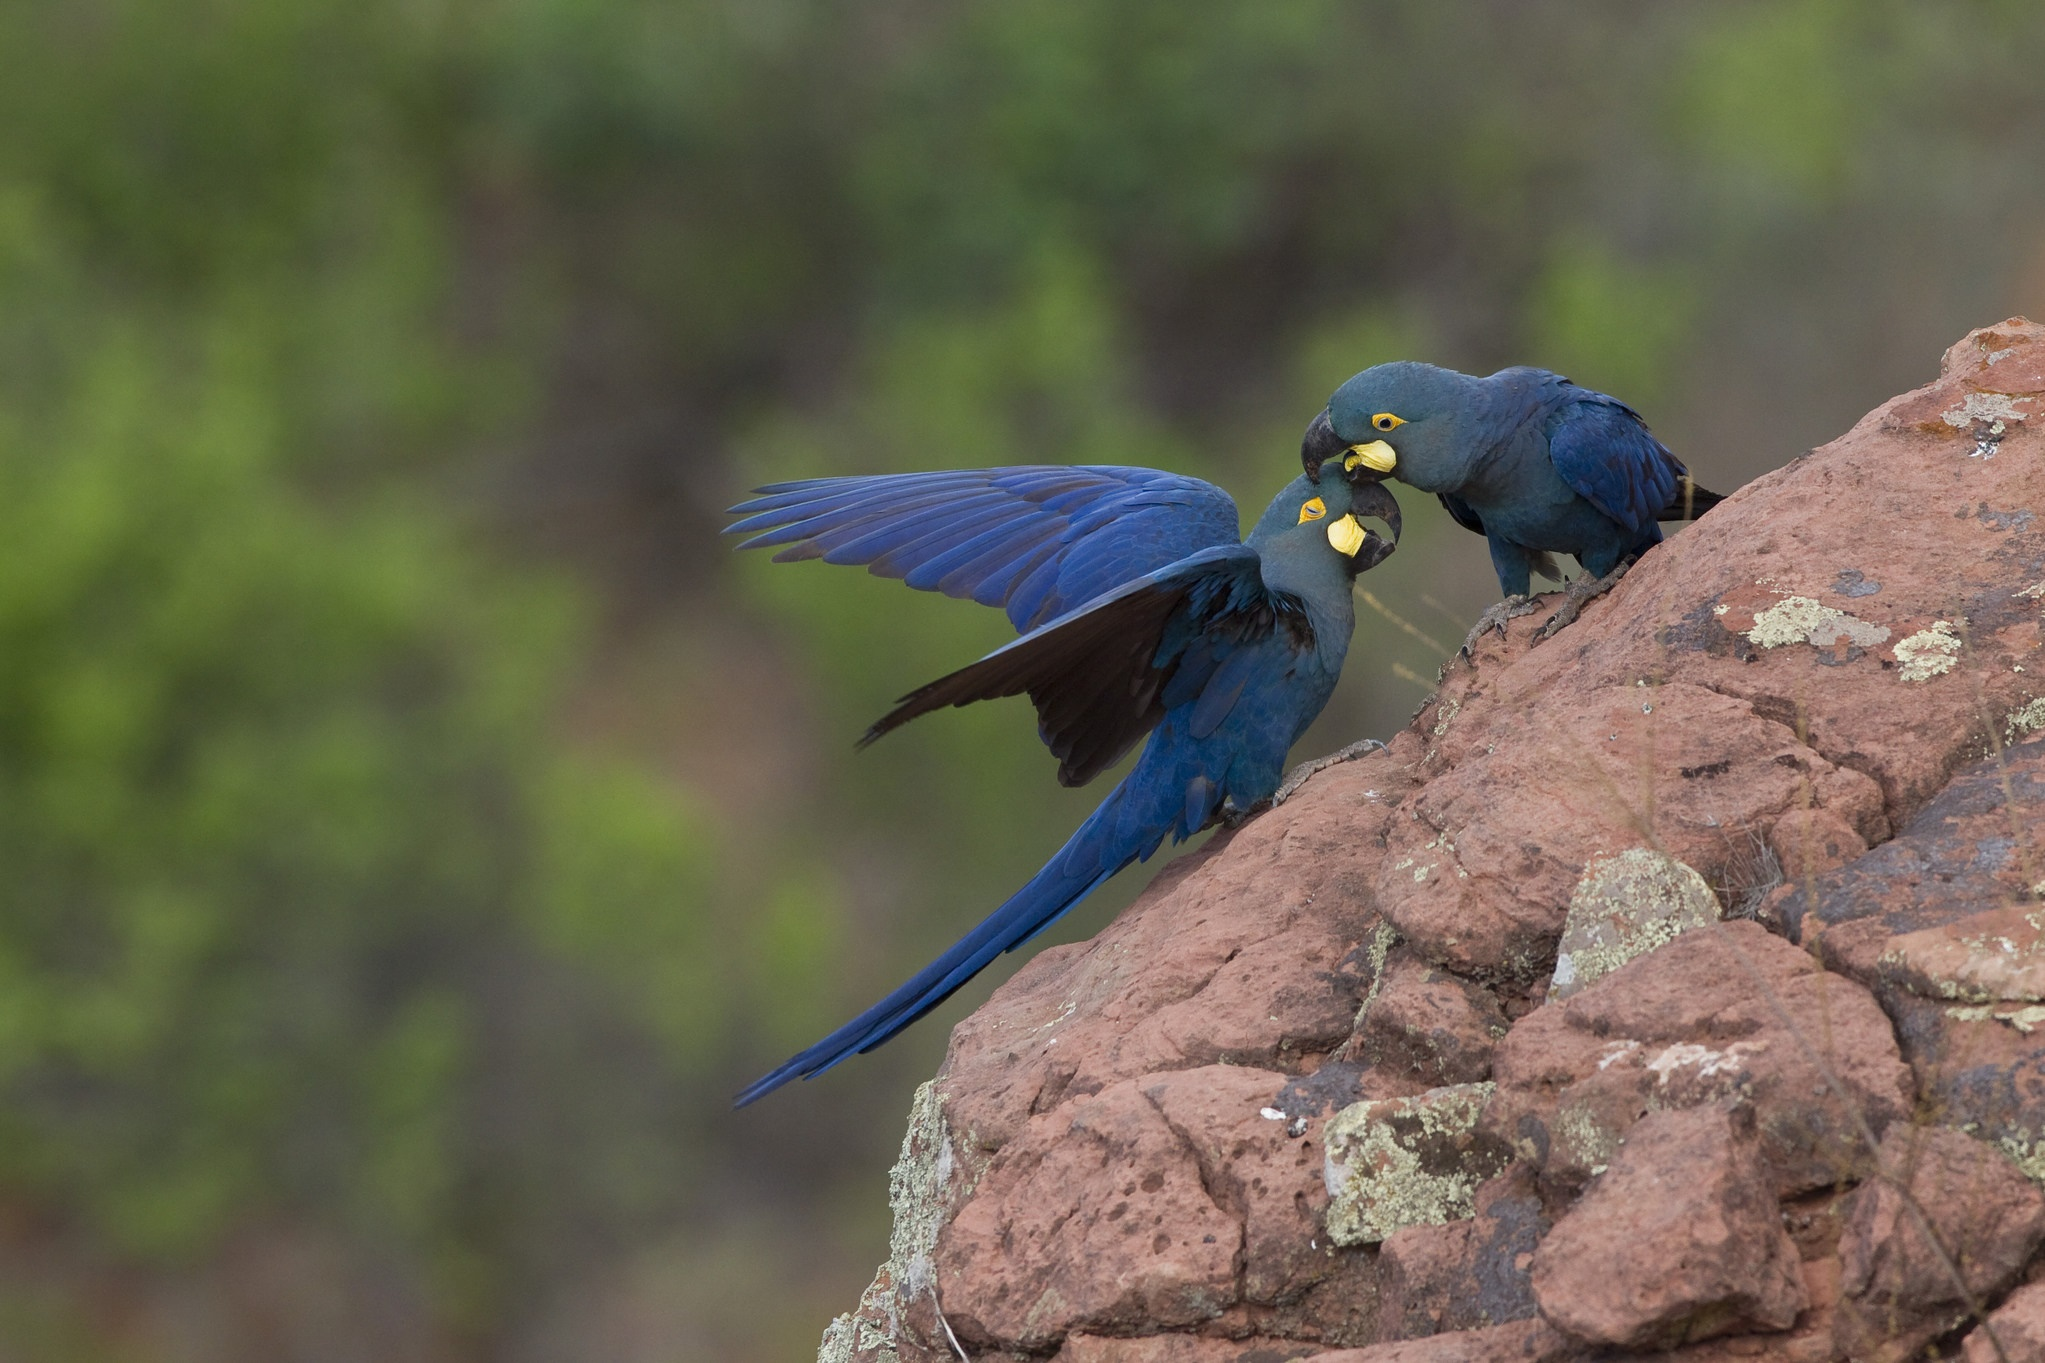 Thanks to conservation projects in Bahia's Caatinga region, the Lear's macaw population has increased from 228 to nearly 1,500 individuals in 20 years. Image by João Marcos Rosa.